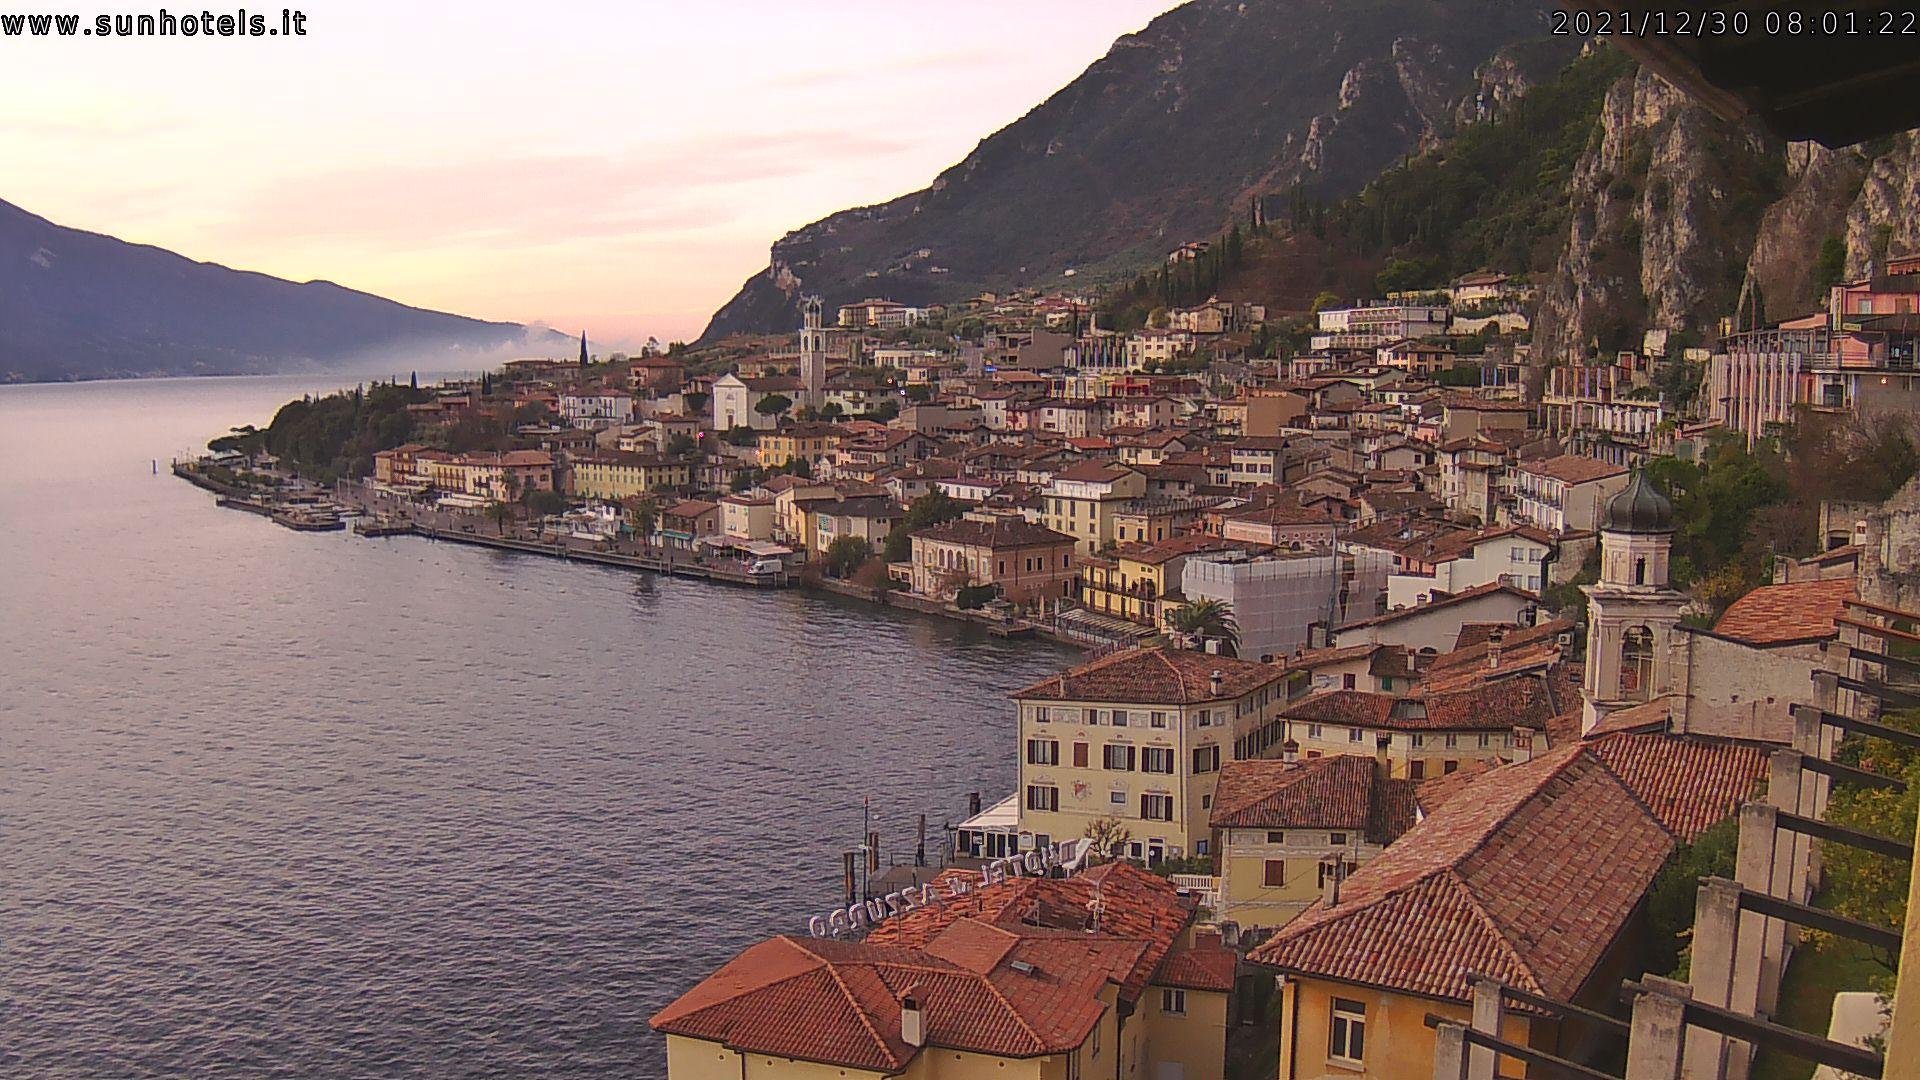 Webcam Limone sul Garda: Lake Garda